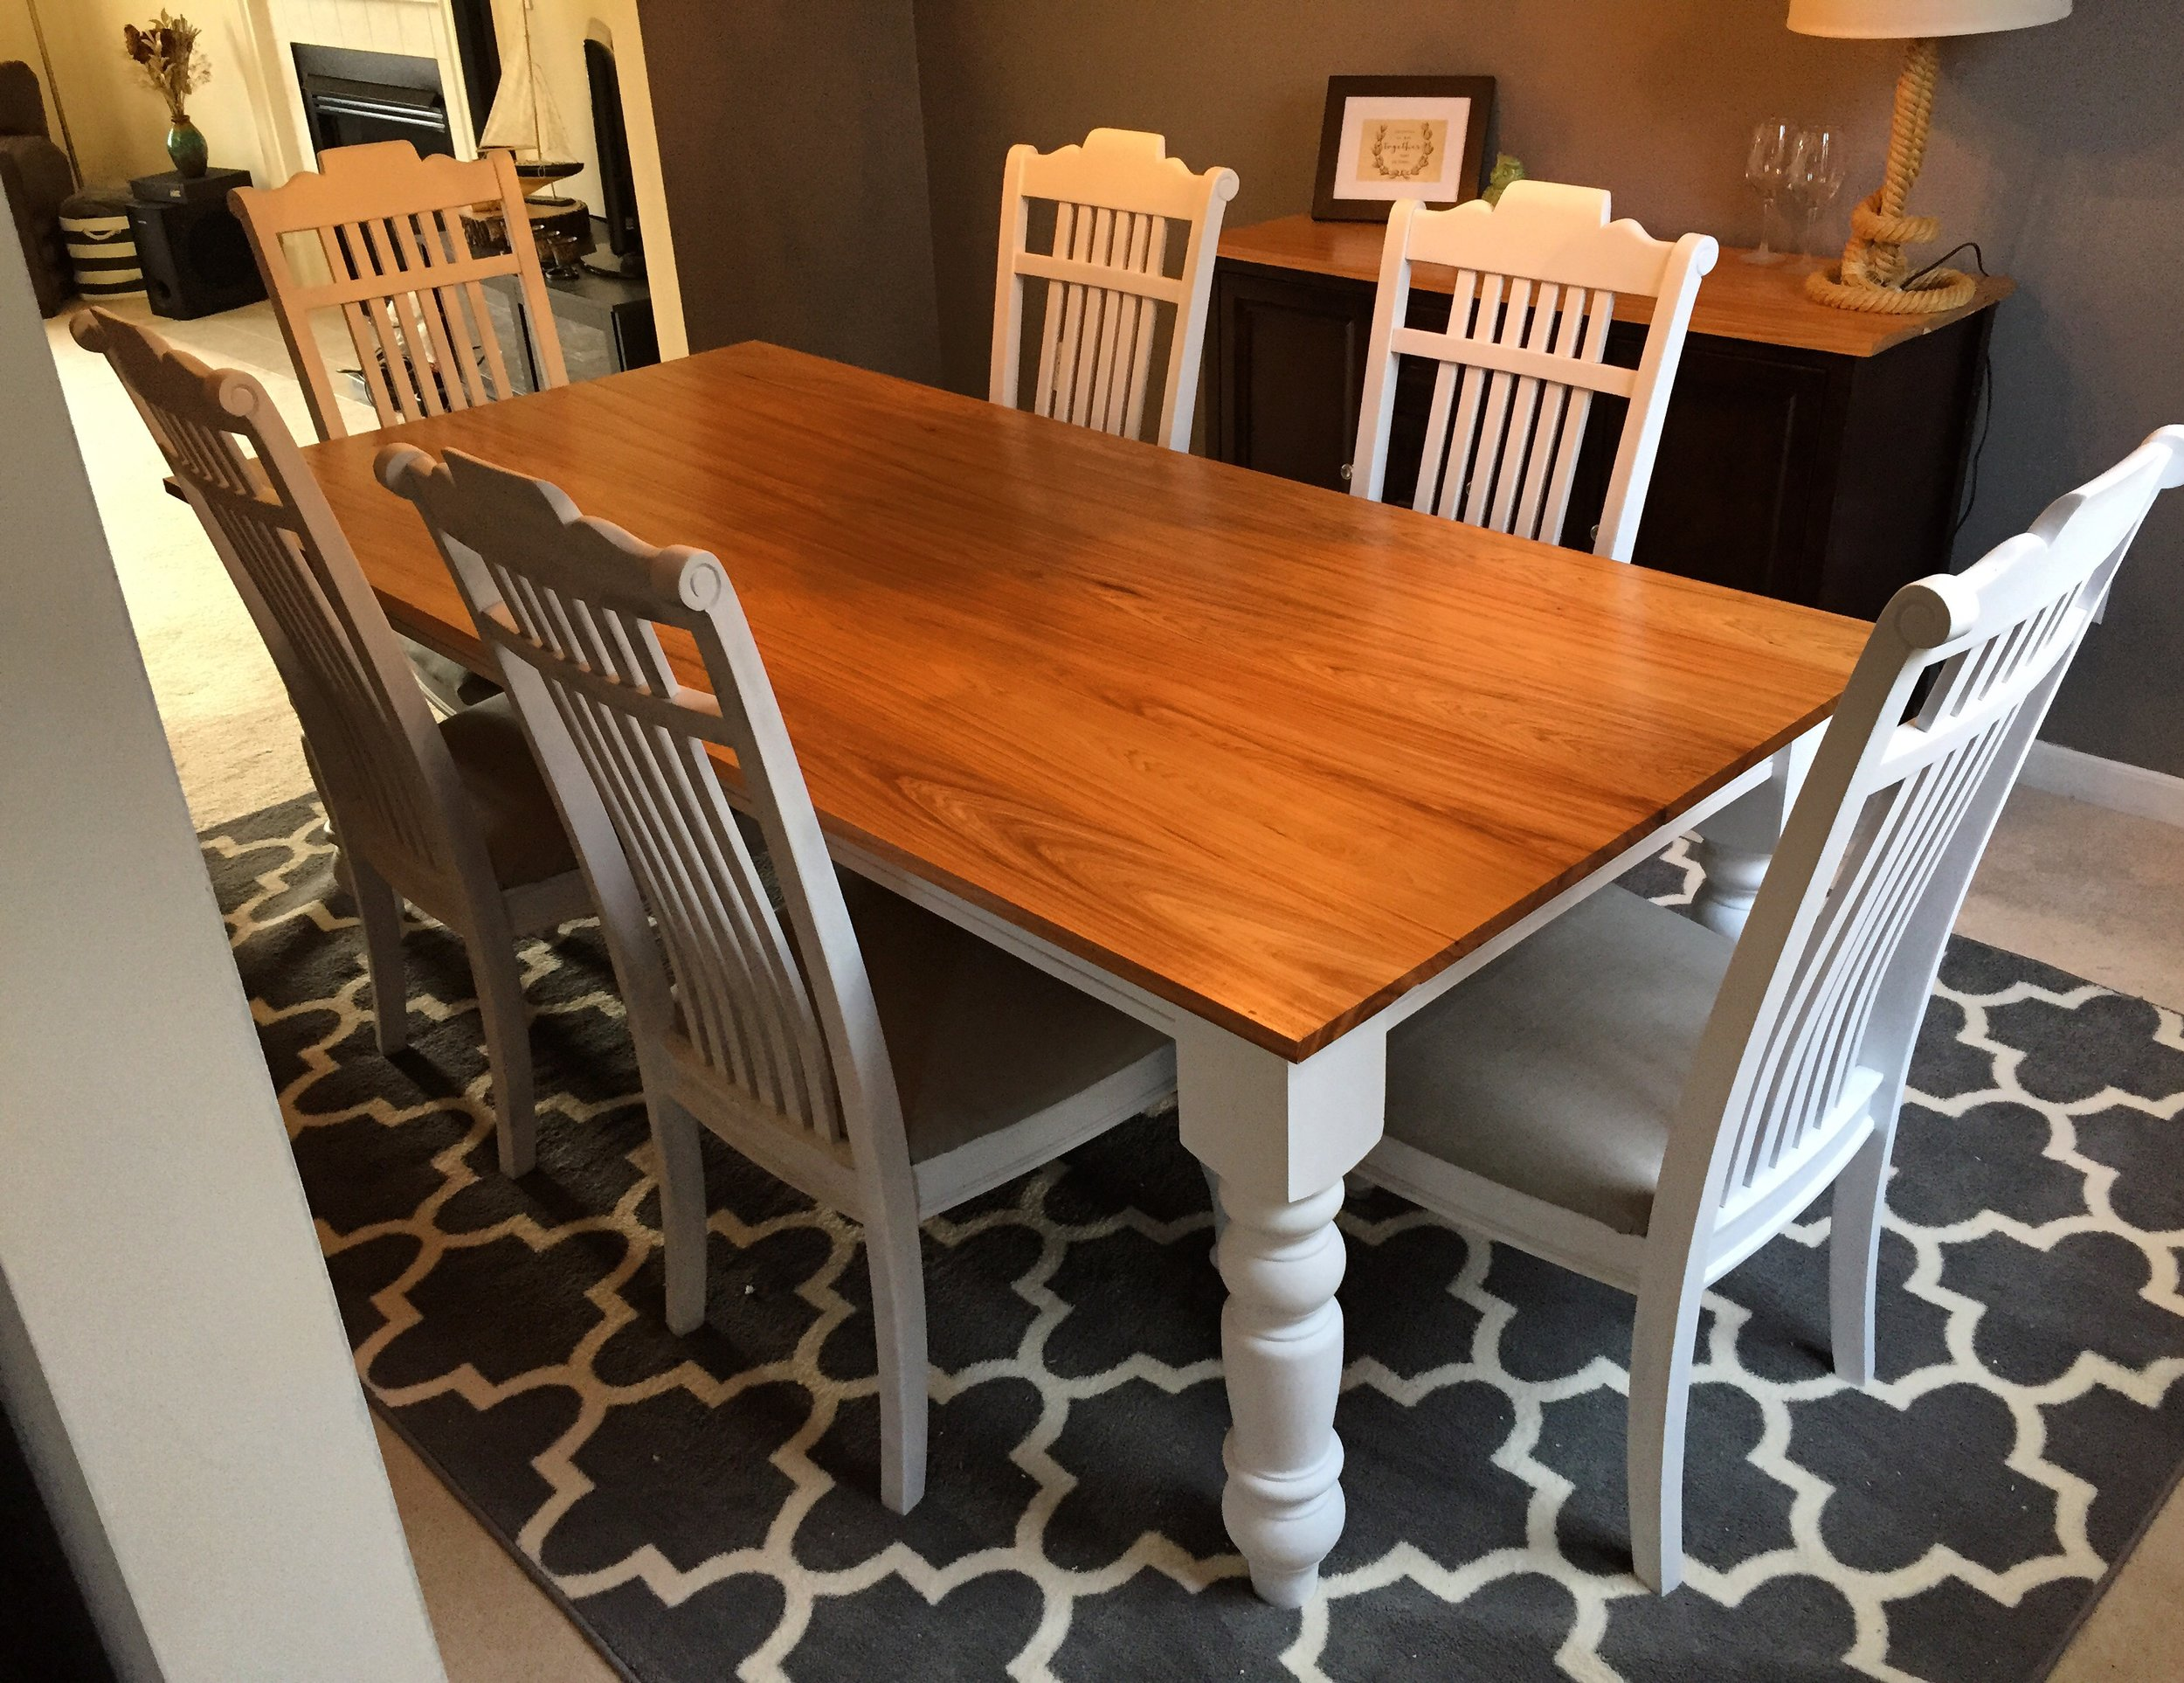 Farmhouse Table with Hickory Top and White Base